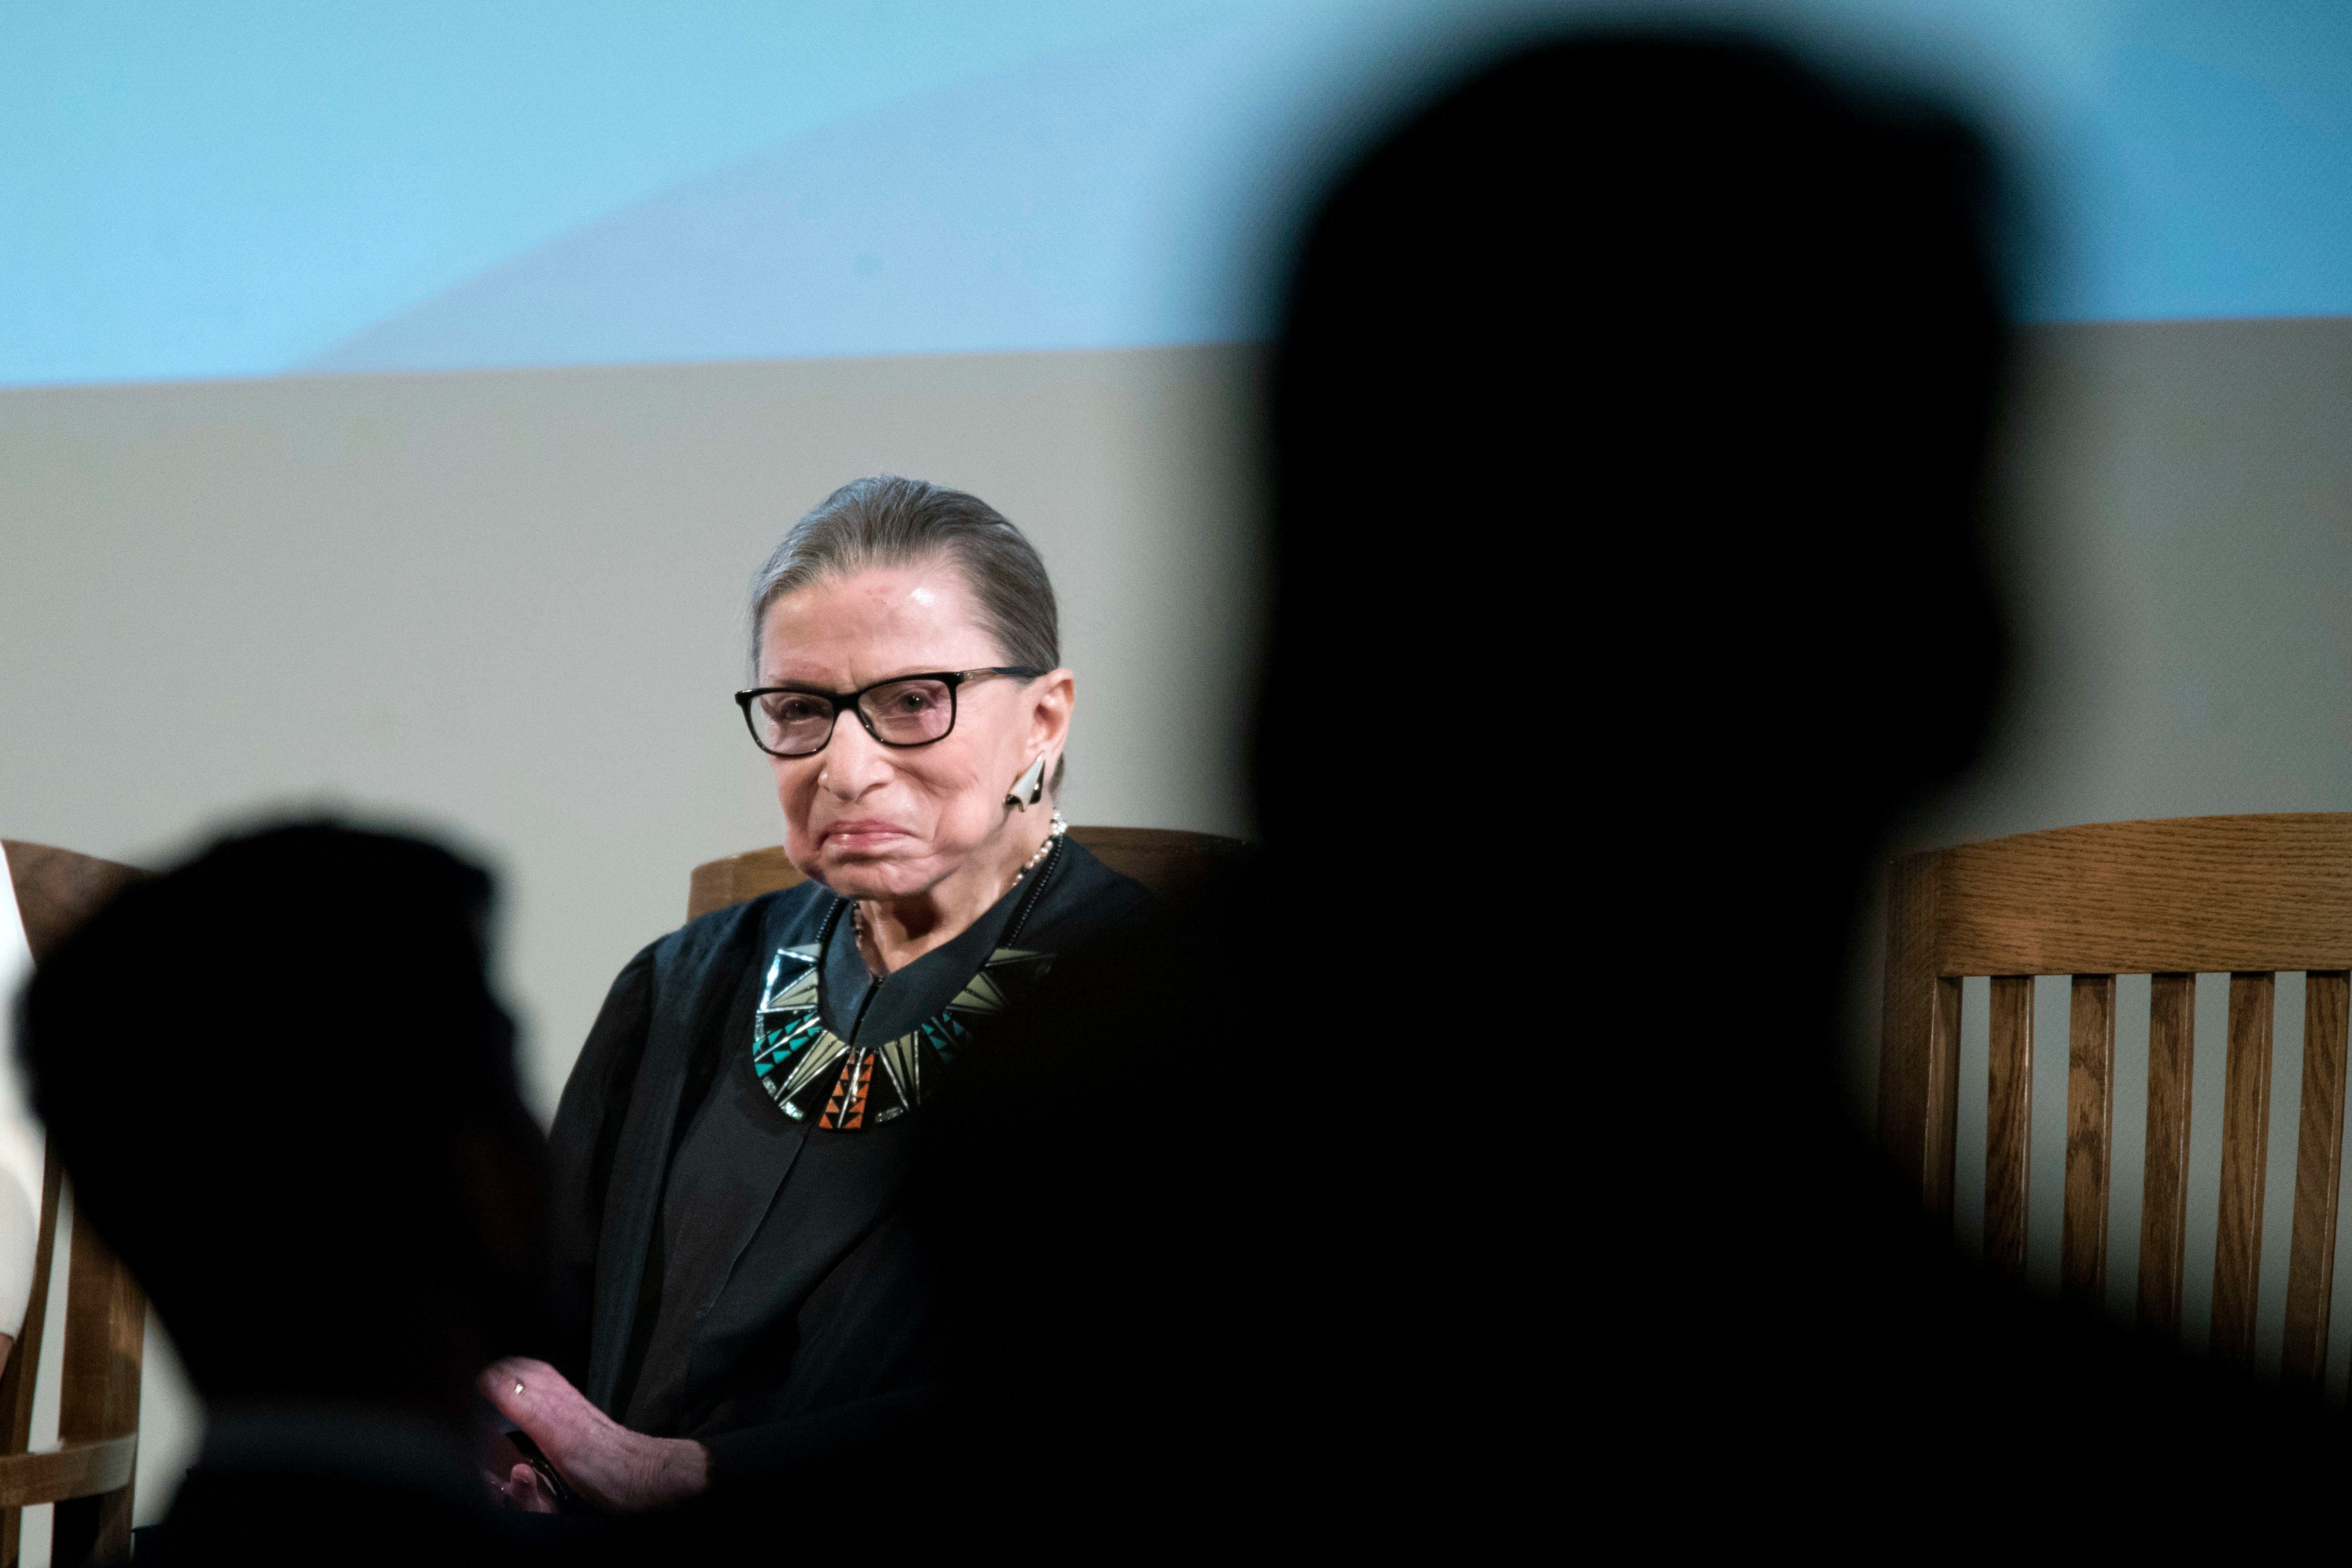 U.S. Supreme Court Justice Ruth Bader Ginsburg looks at U.S. citizenship candidates during swearing in ceremony for new American citizens, Tuesday, April 10, 2018, in New York.  Justice Ginsberg administered the Oath of Allegiance to 200 immigrants from 59 countries who became U.S. citizens.  (AP Photo/Mary Altaffer)